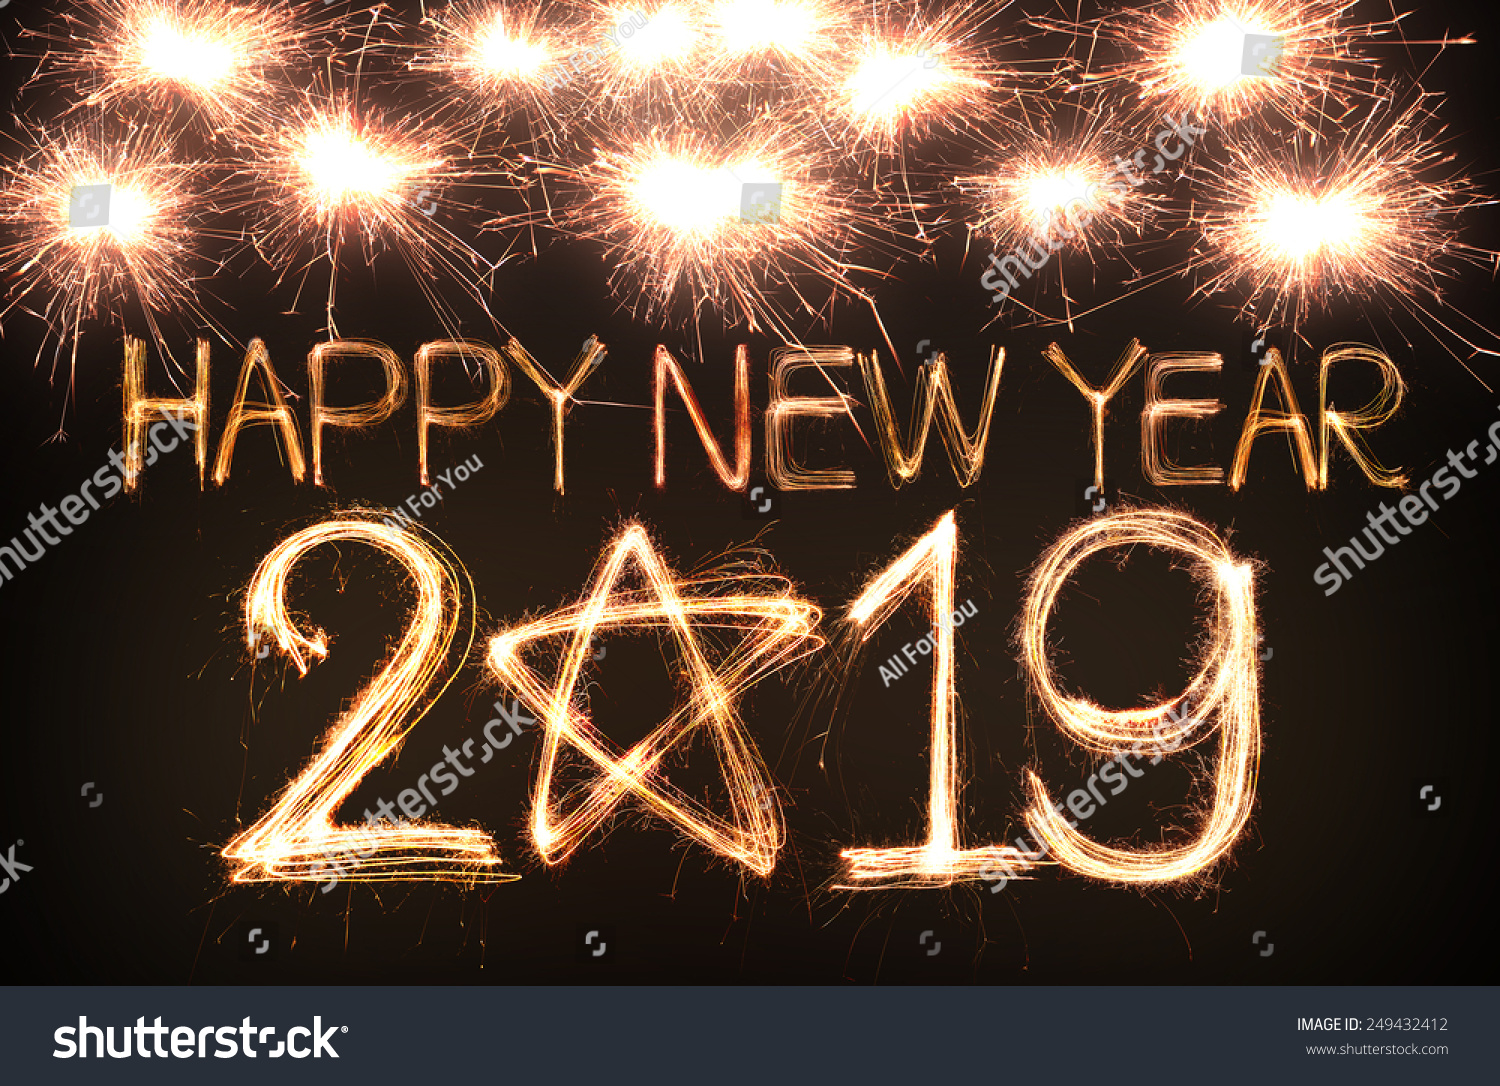 Royalty Free Happy New Year 2019 Written With 249432412